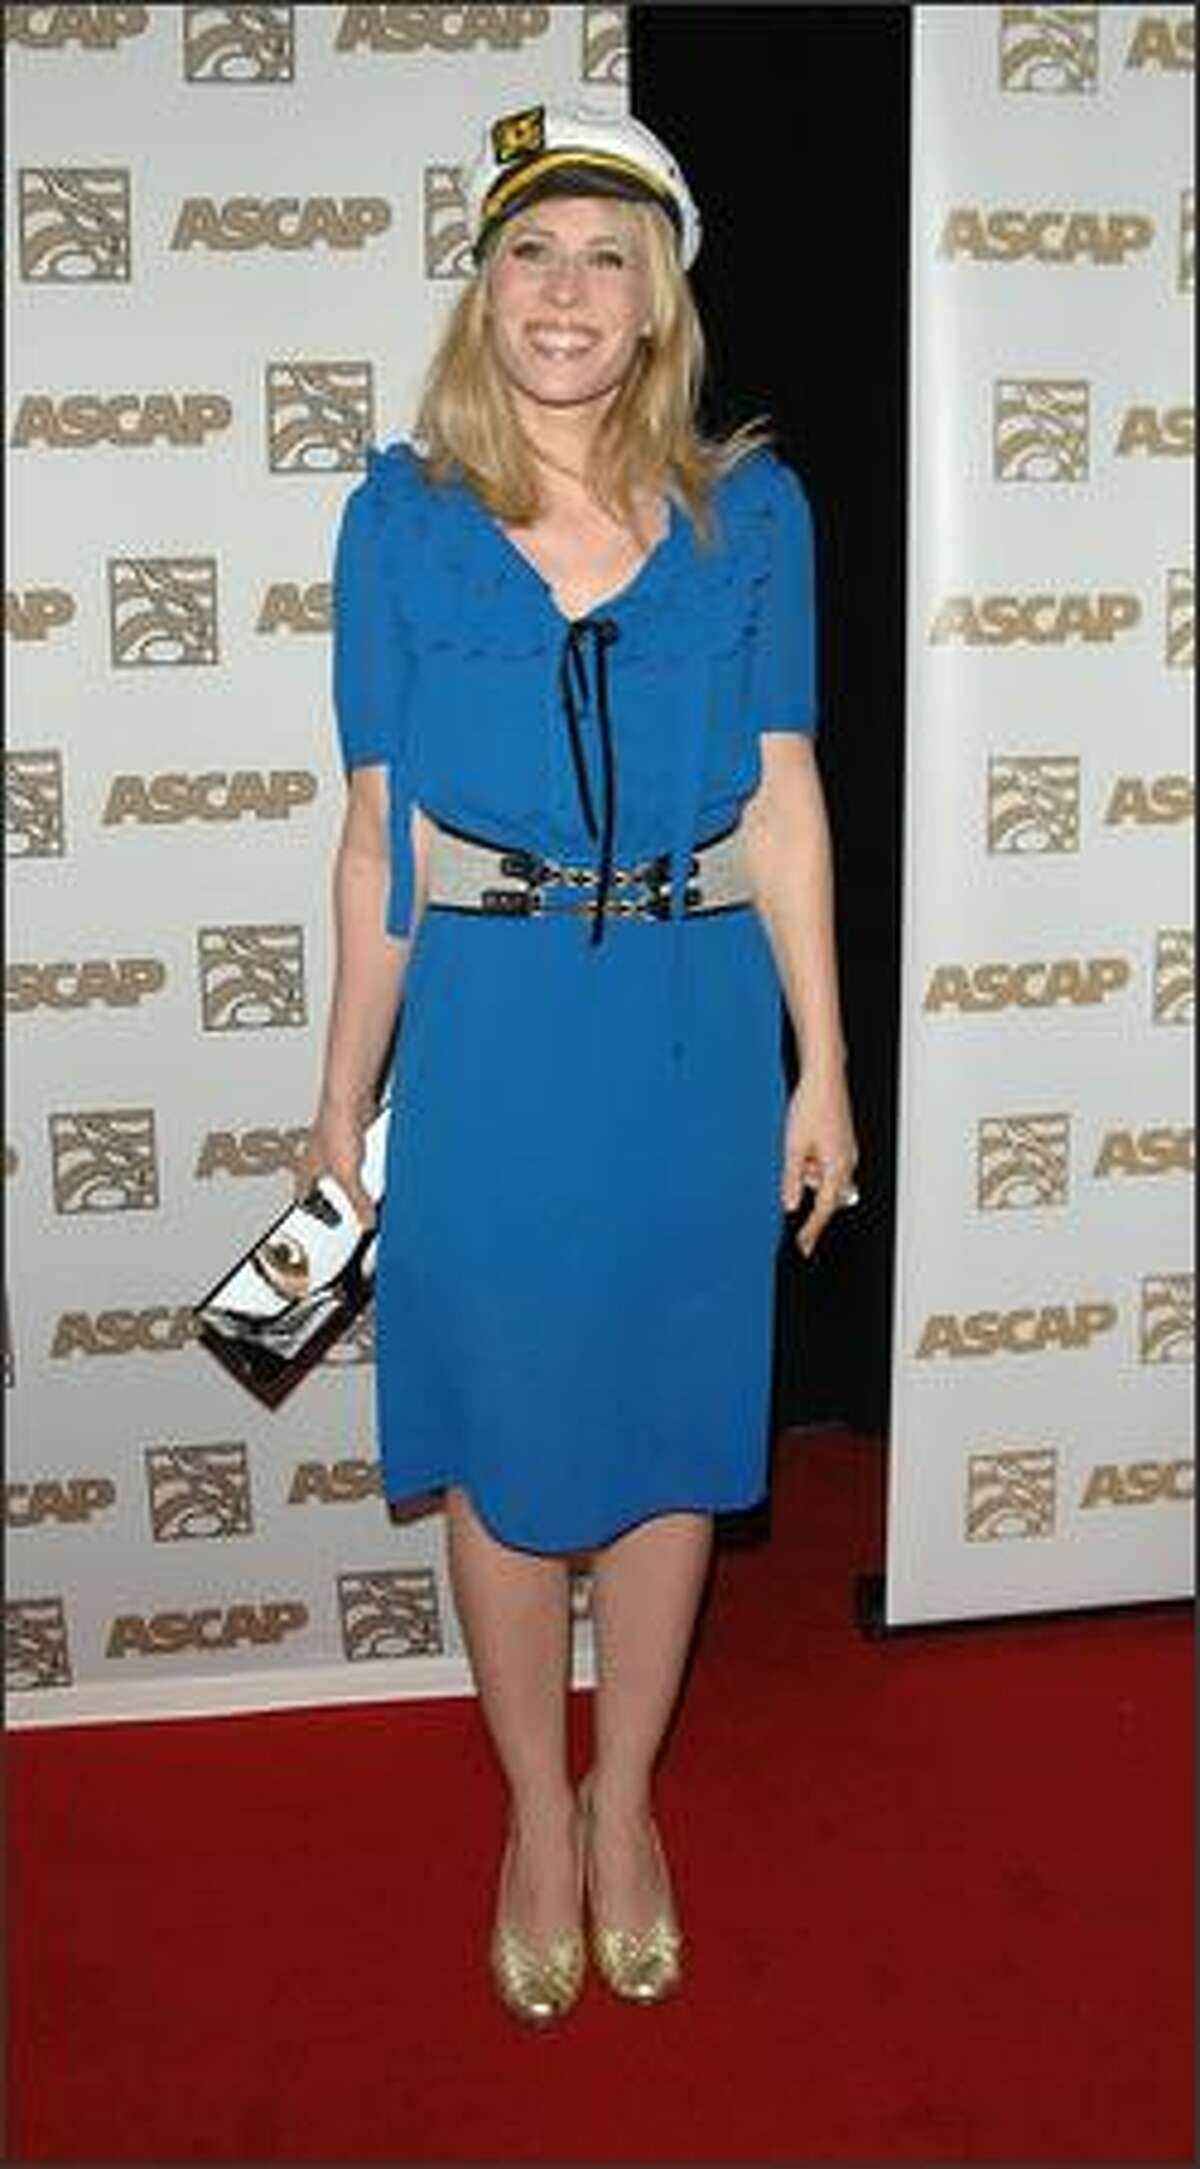 Singer Natasha Bedingfield attends ASCAP's 25th Annual Pop Music Awards at the Kodak Theatre on April 9, 2008 in Hollywood, California.